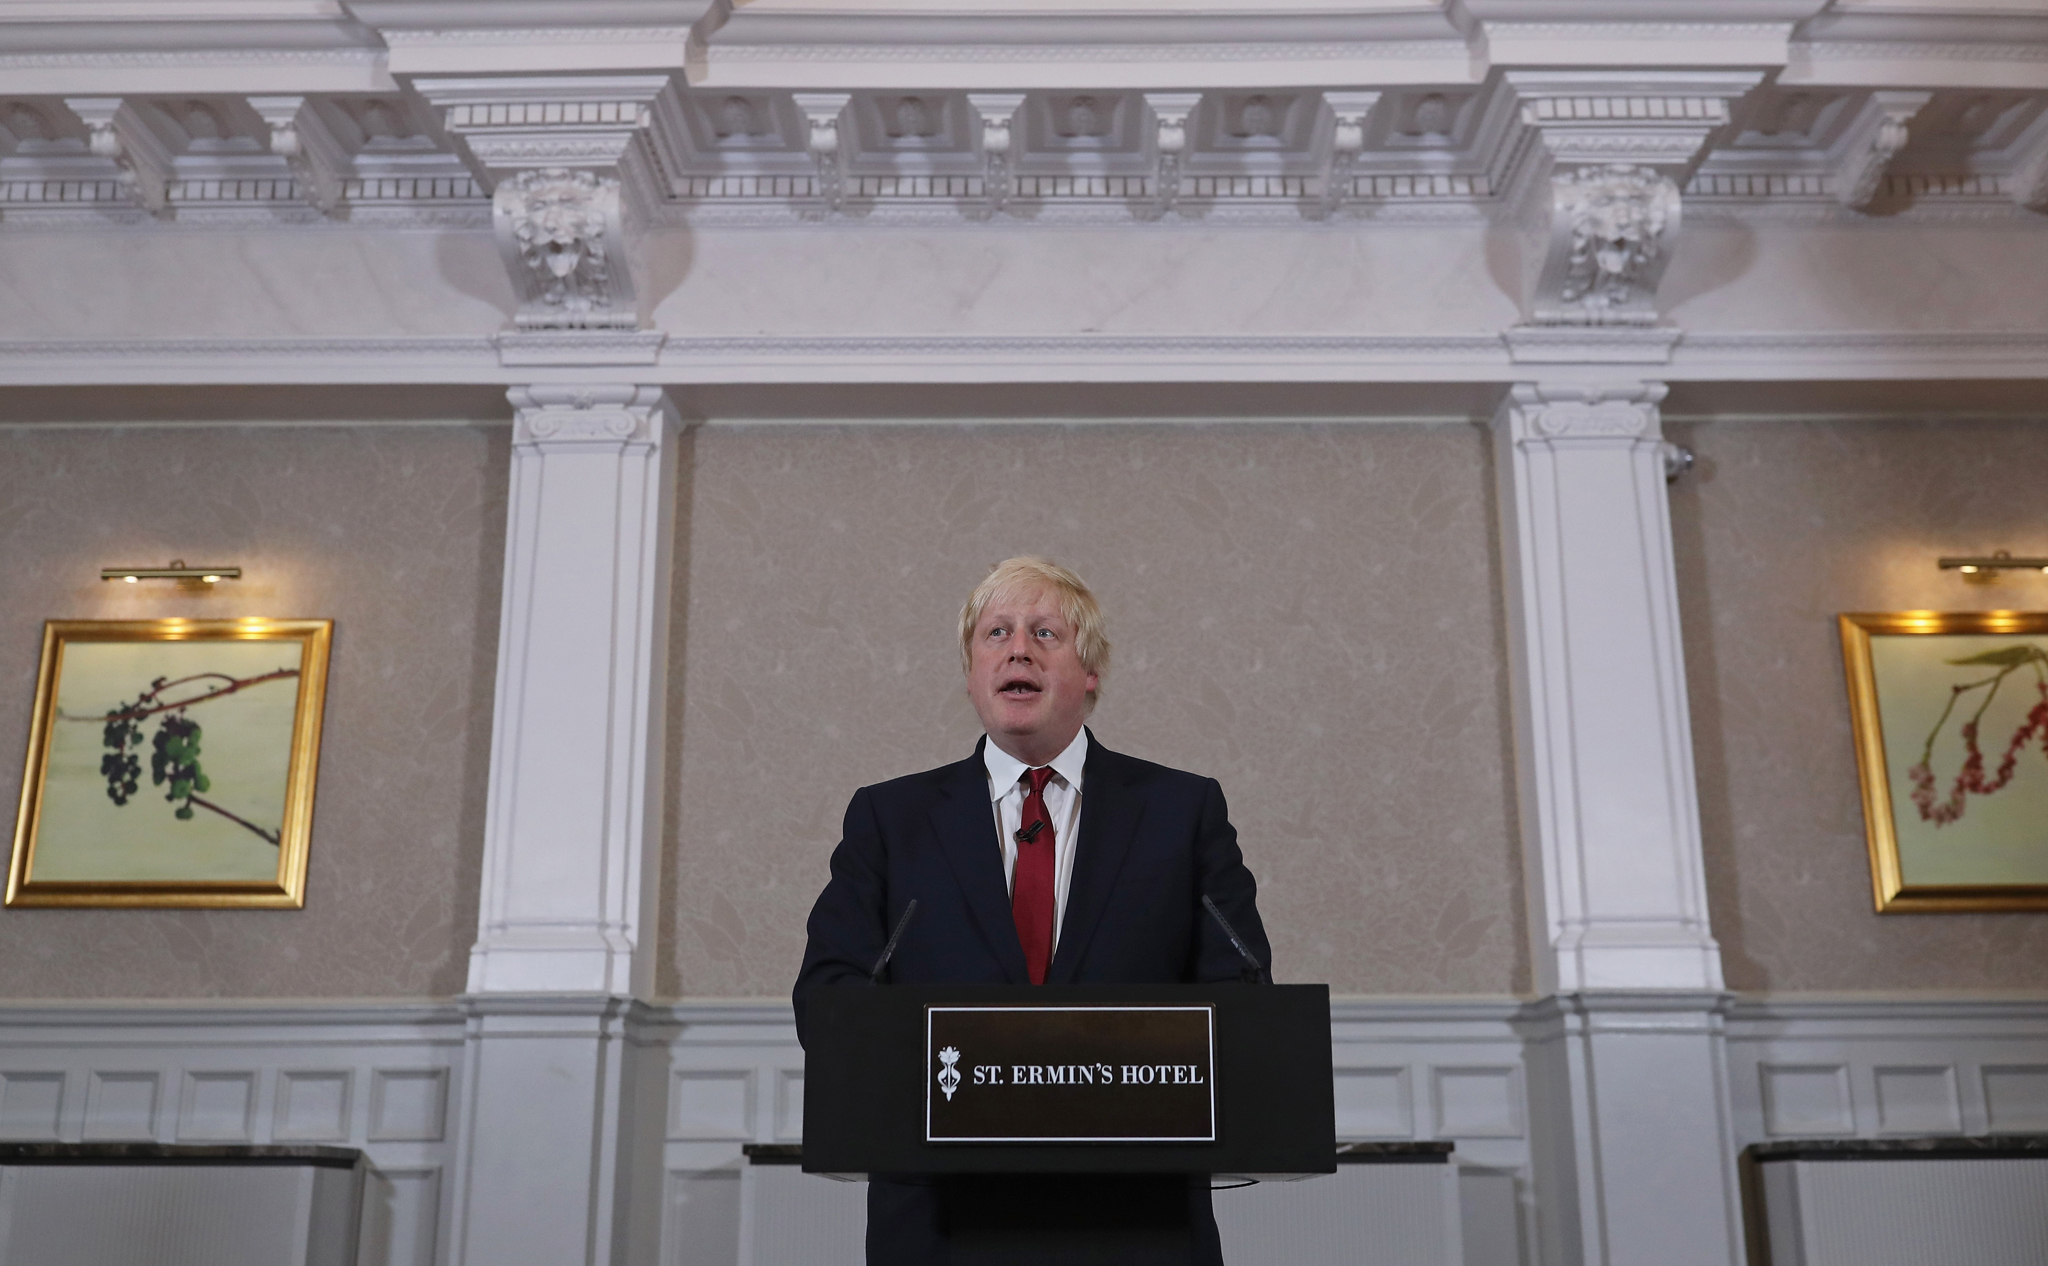 Former London Mayor and Conservative MP Boris Johnson speaks as he rules himself out of becoming the next Conservative party leader at St Ermin's Hotel